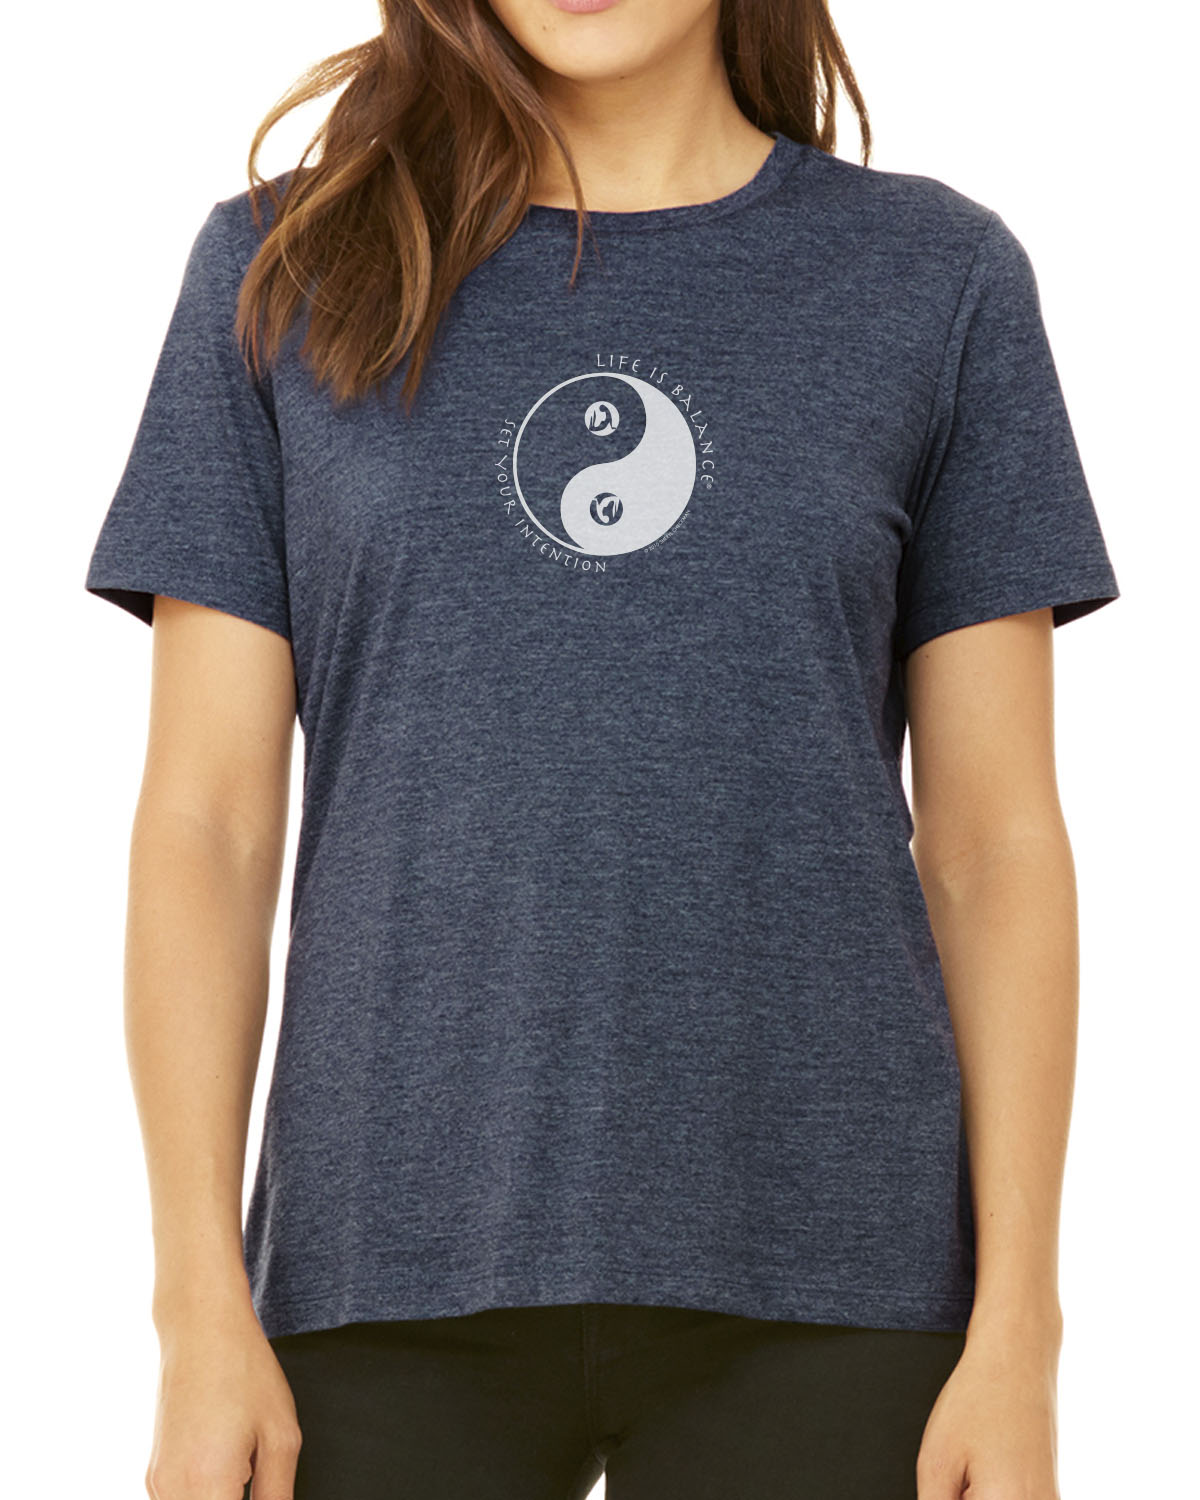 Women's short sleeve yoga t-shirt (Heather Navy)